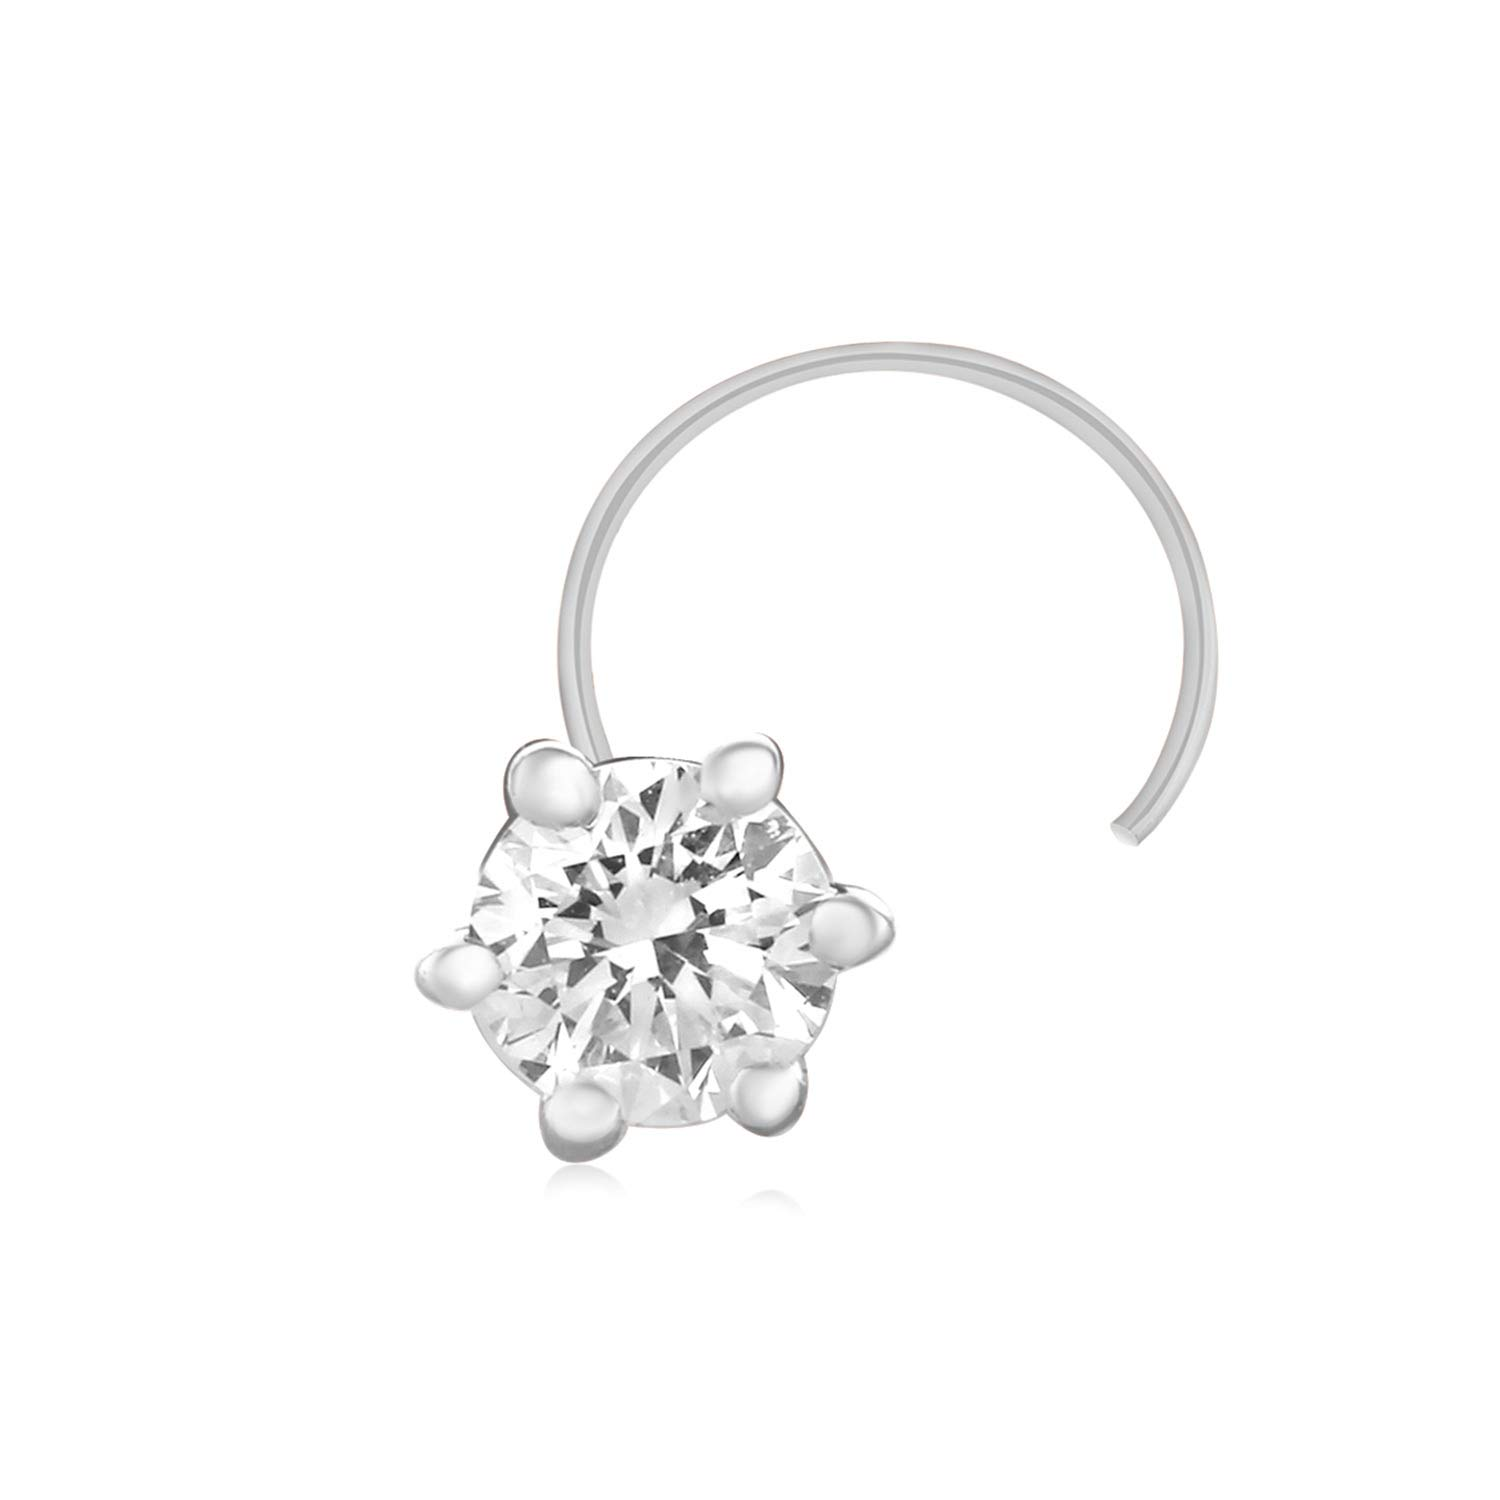 CARATS FOR YOU 0.08ct Brilliant Round Shape Genuine Real Natural Diamond 10k White Gold Solitaire Nose Ring Stud Pin for women by CARATS FOR YOU